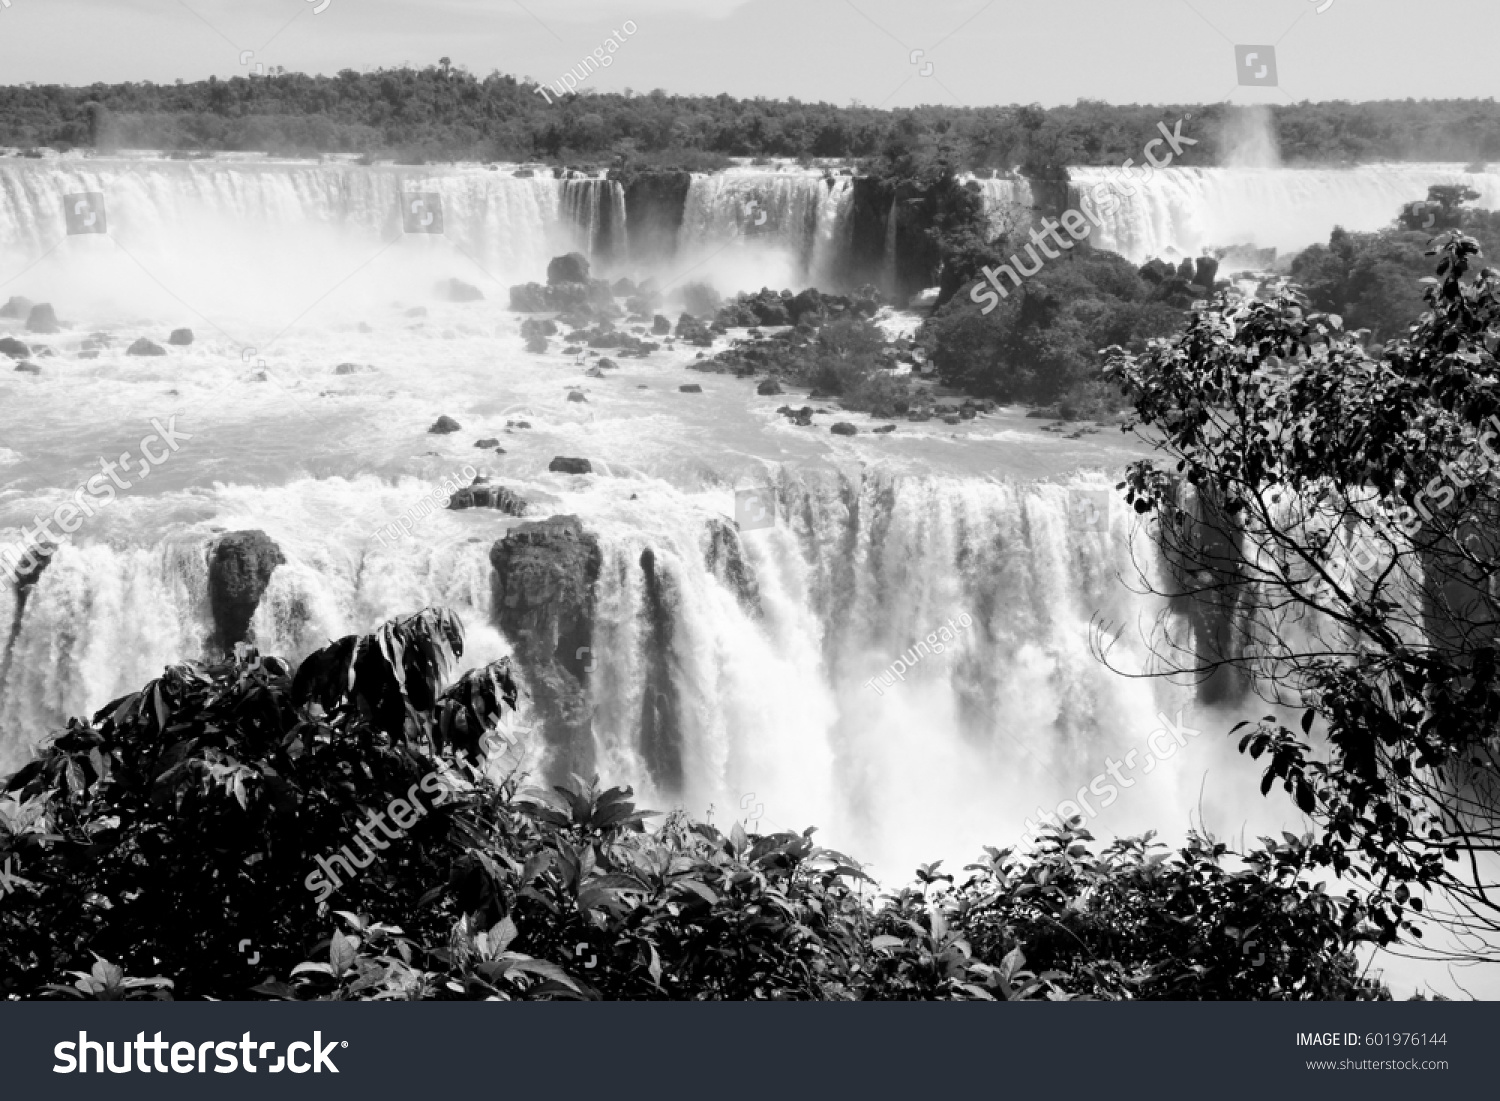 stock-photo-iguazu-falls-landscape-black